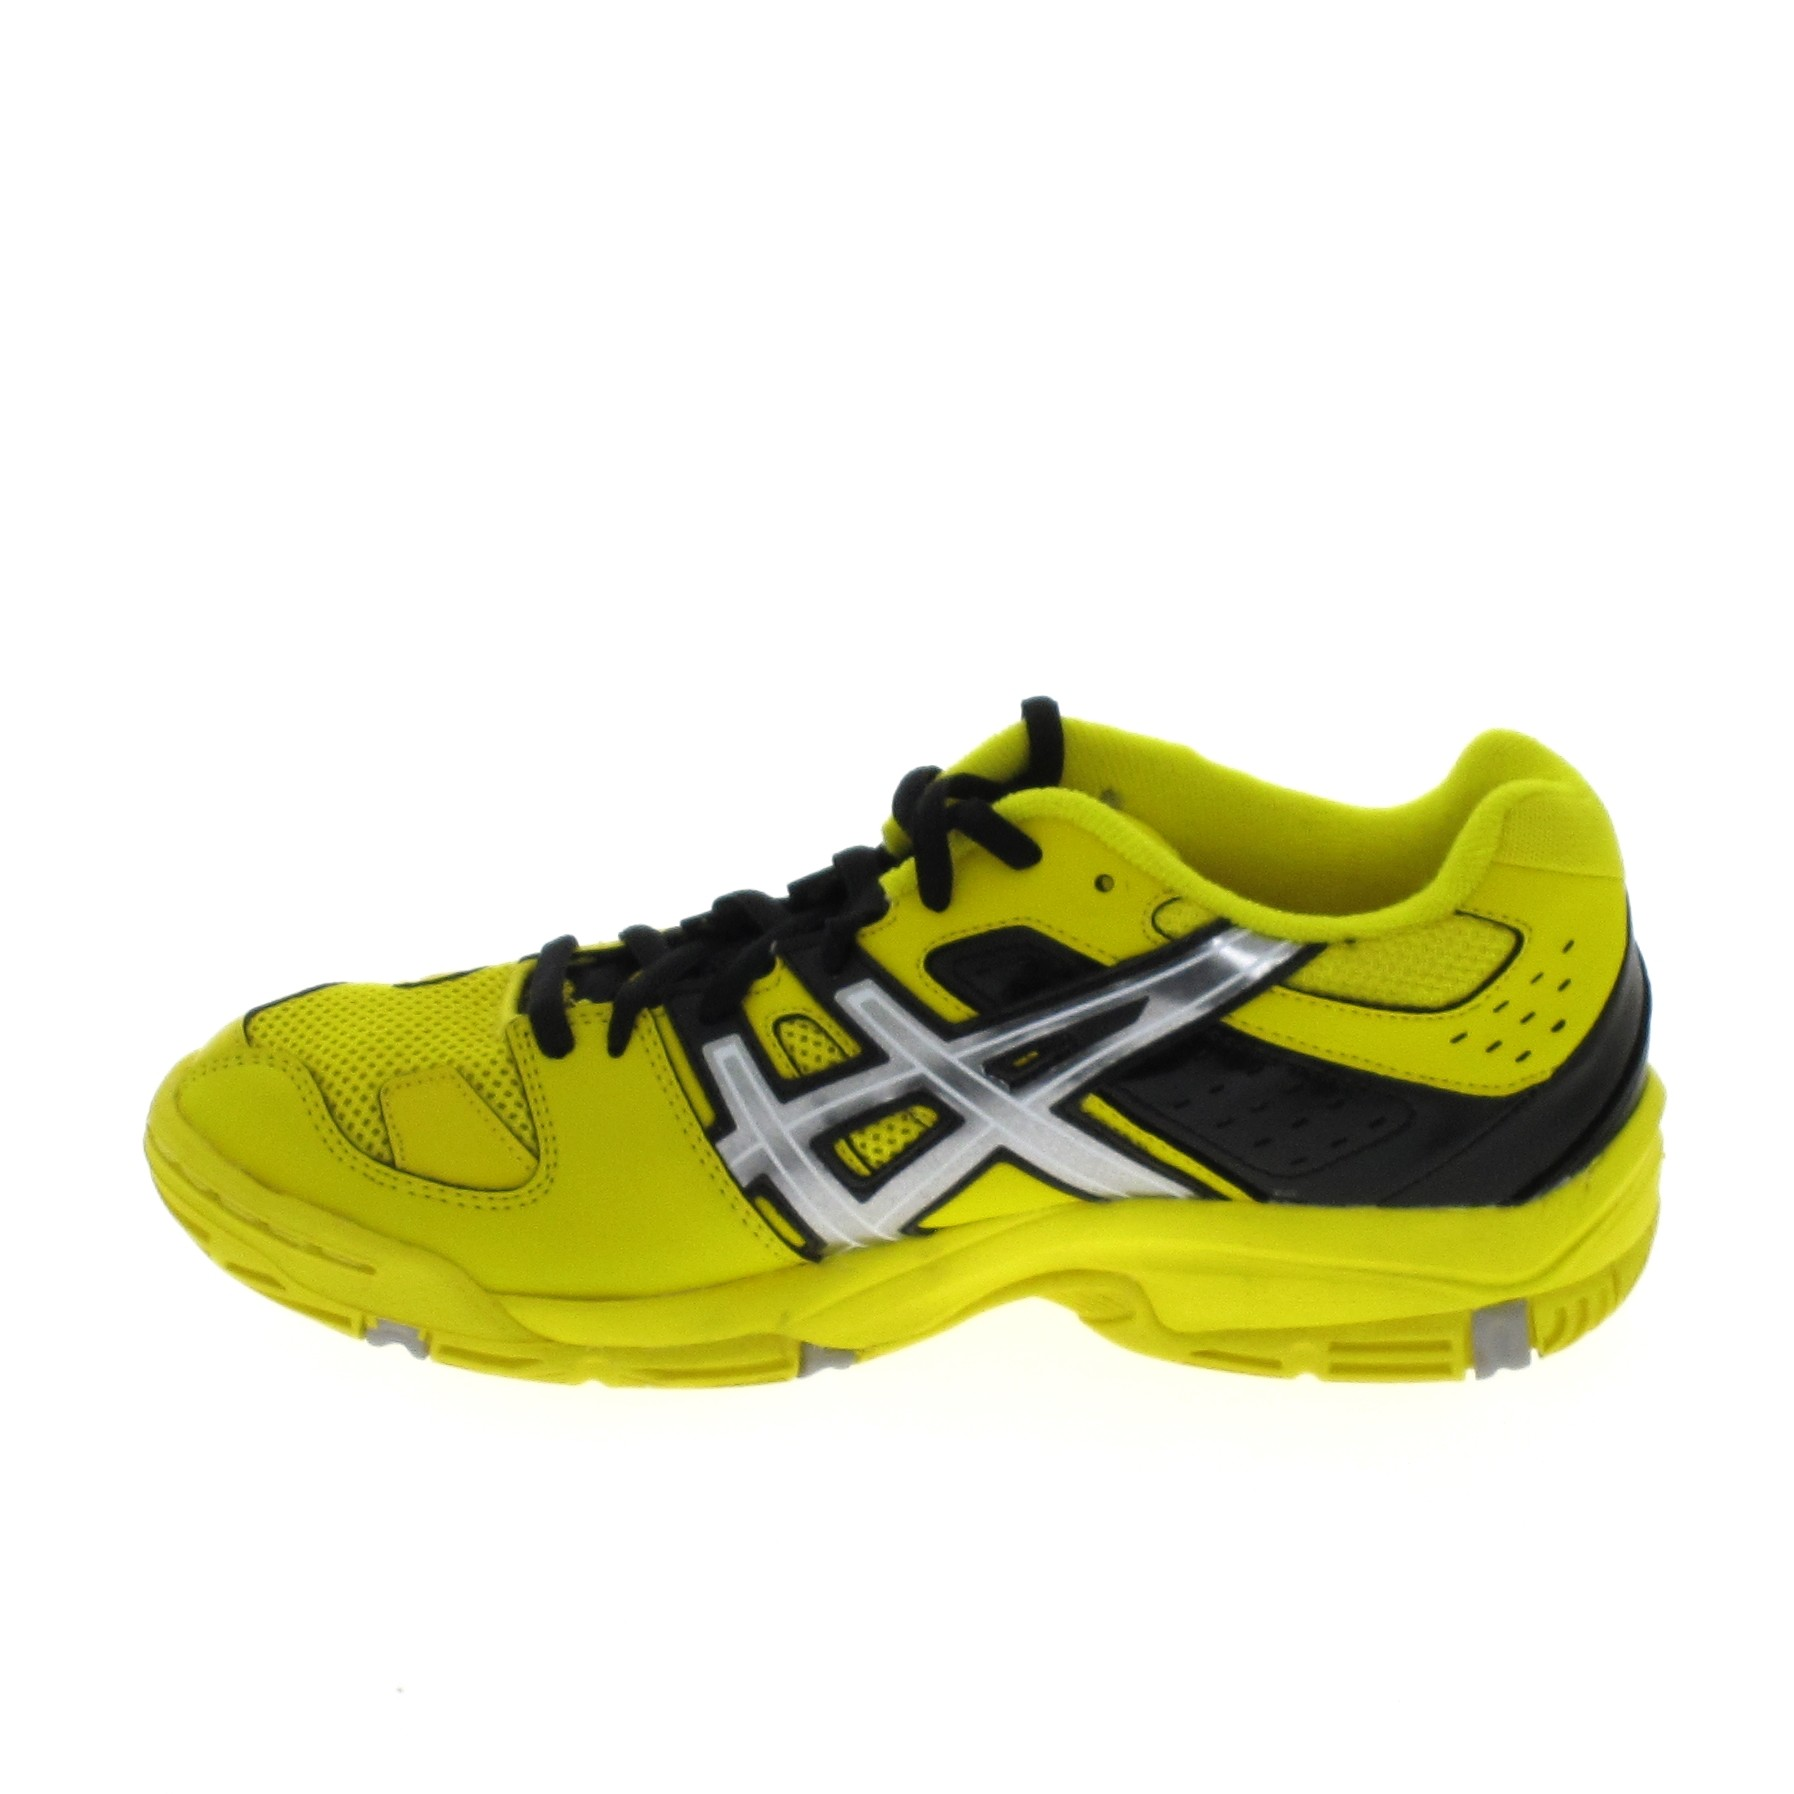 Chaussure Junior Handball Asics Asics Chaussure Handball Chaussure Asics Junior Handball Junior Chaussure Junior Handball Junior Asics n8SwYxqAO